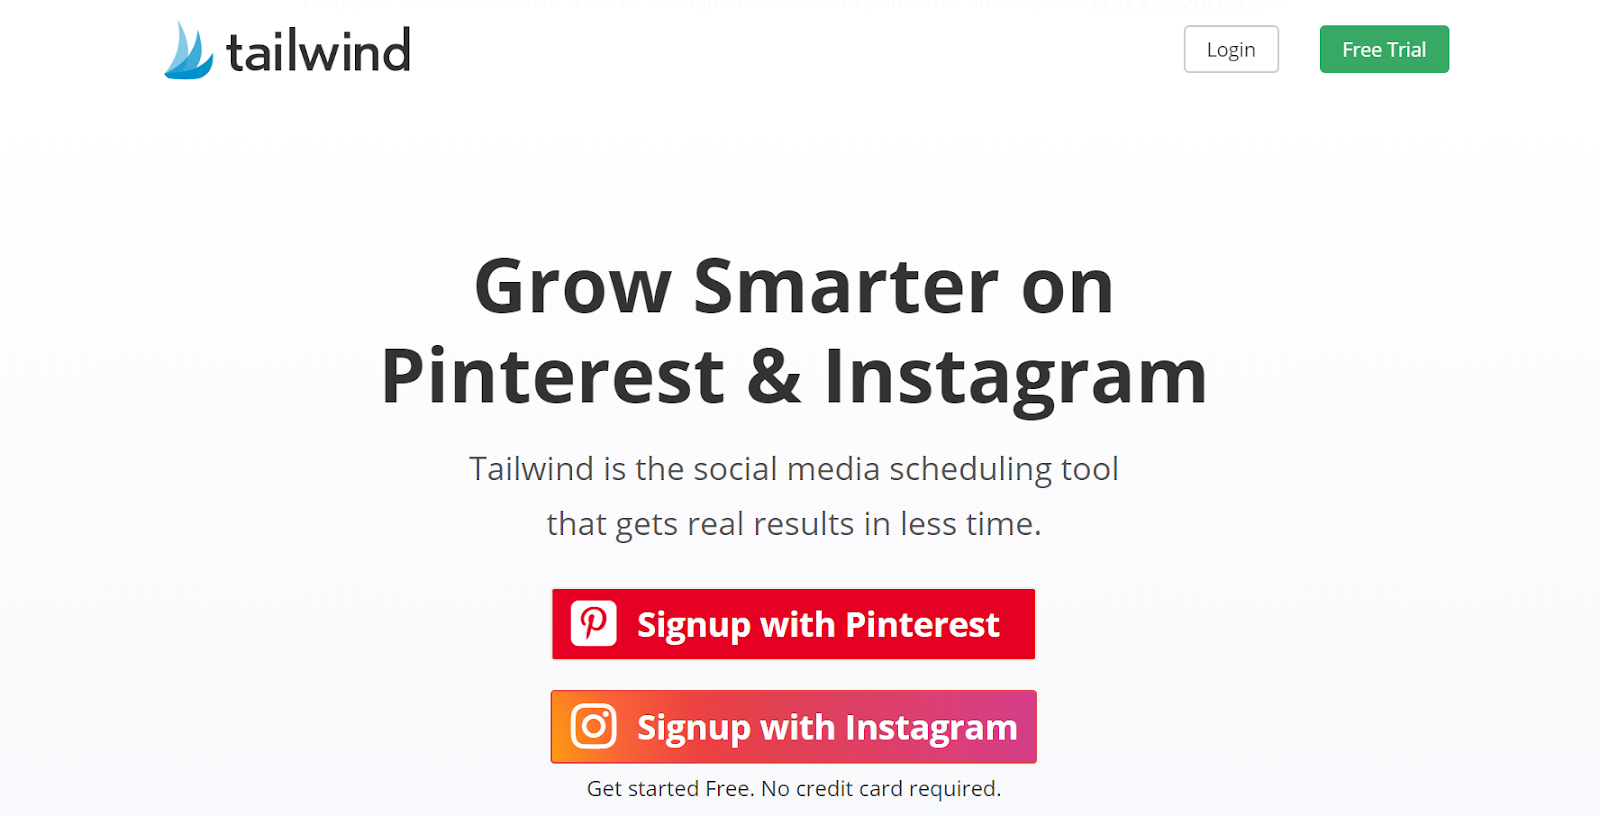 affiliate marketing tools for Instagram and Pinterest